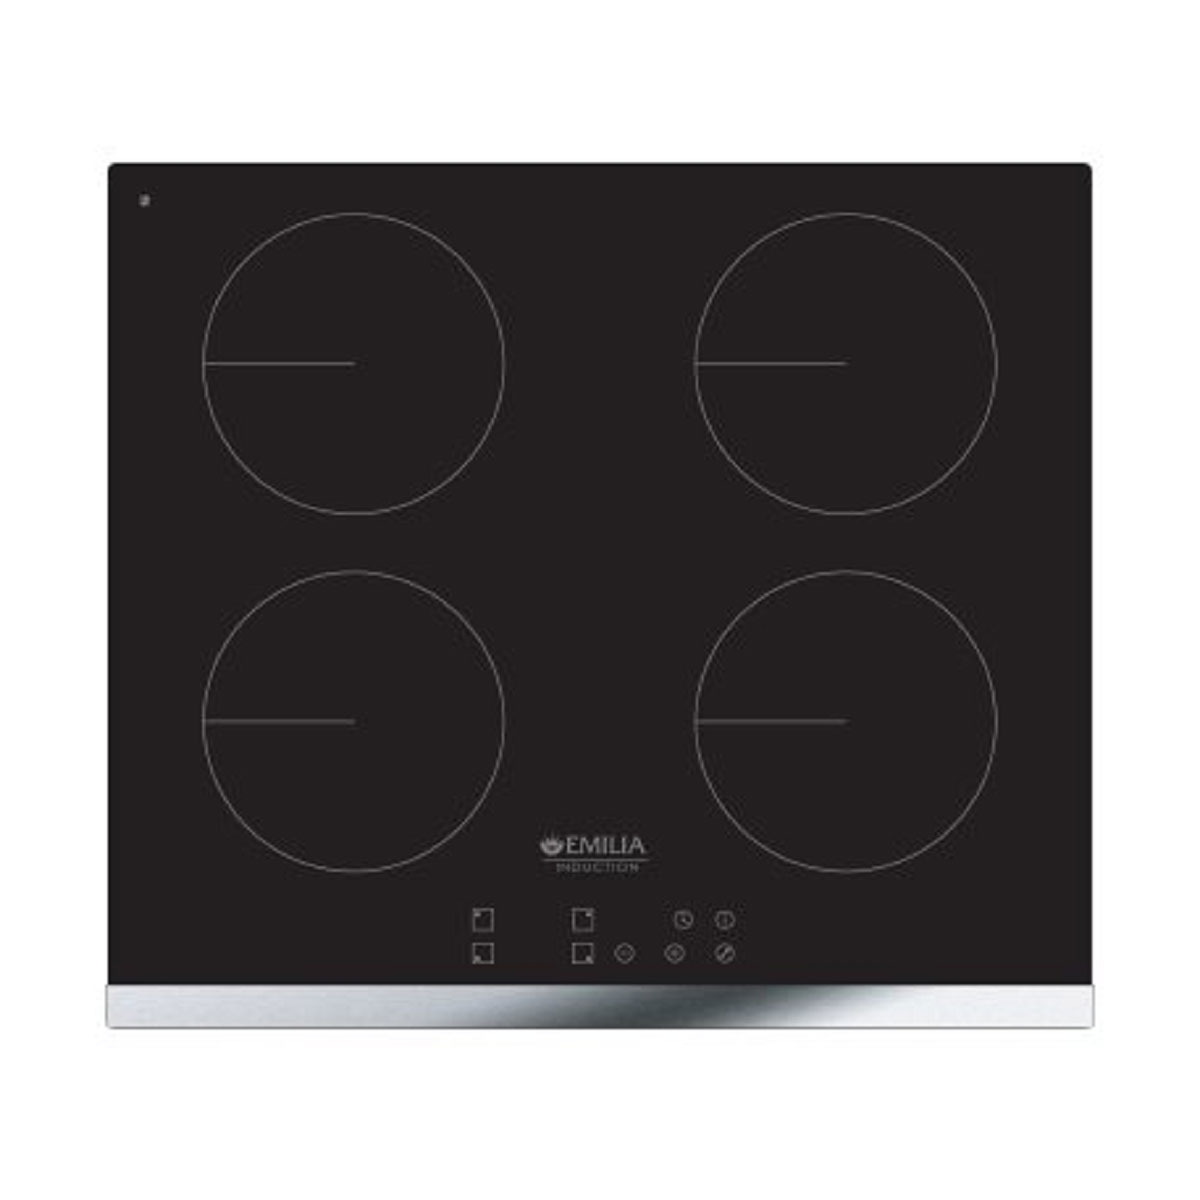 Emilia Induction Cooktops EMIND64